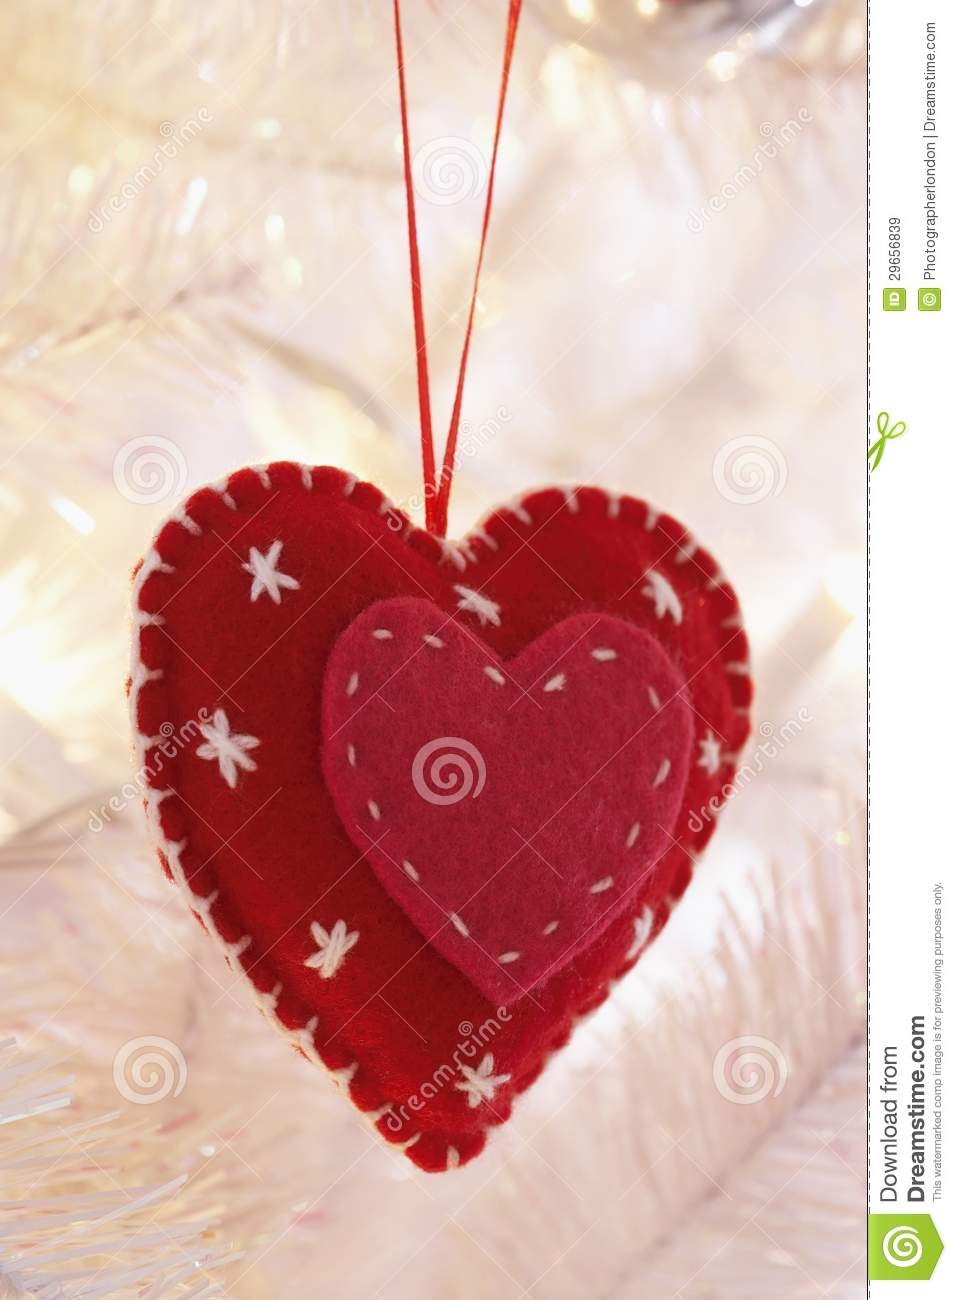 Heart shaped decoration hanging on christmas tree royalty for Heart shaped decorations home